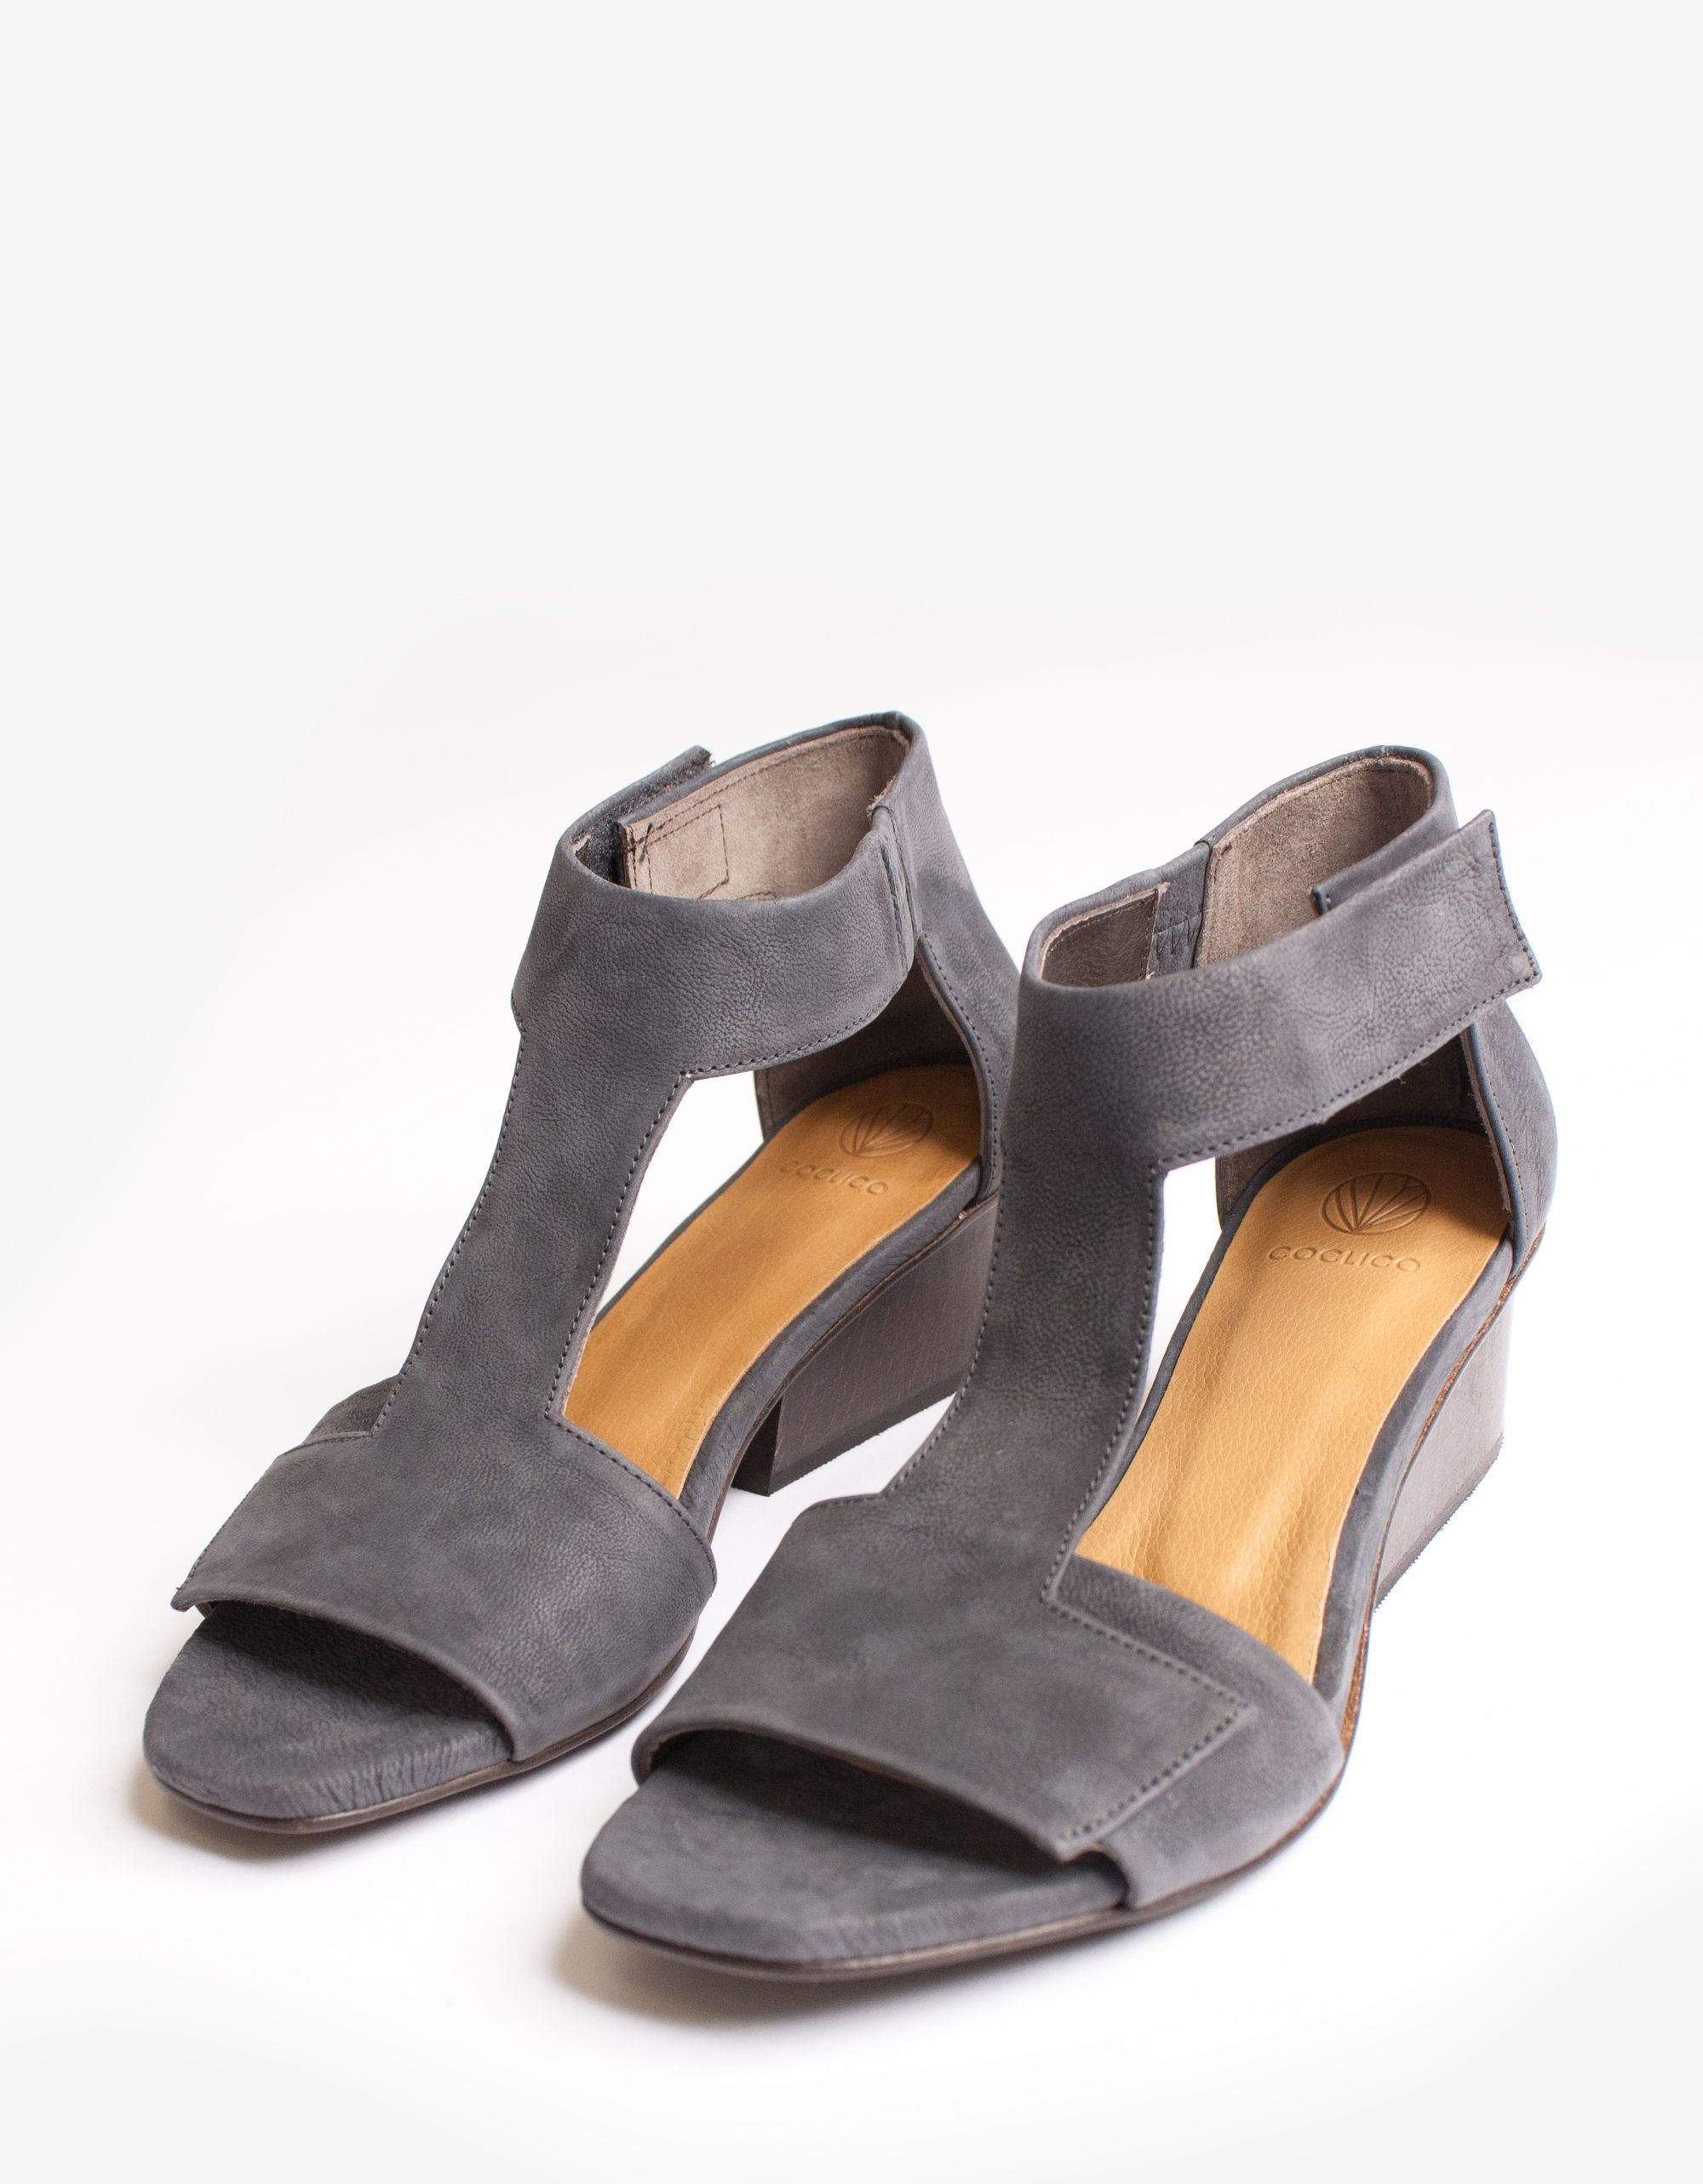 Coclico Suede T-Strap Sandals buy cheap Inexpensive outlet buy low cost online cheap sale clearance obtRtUTiY